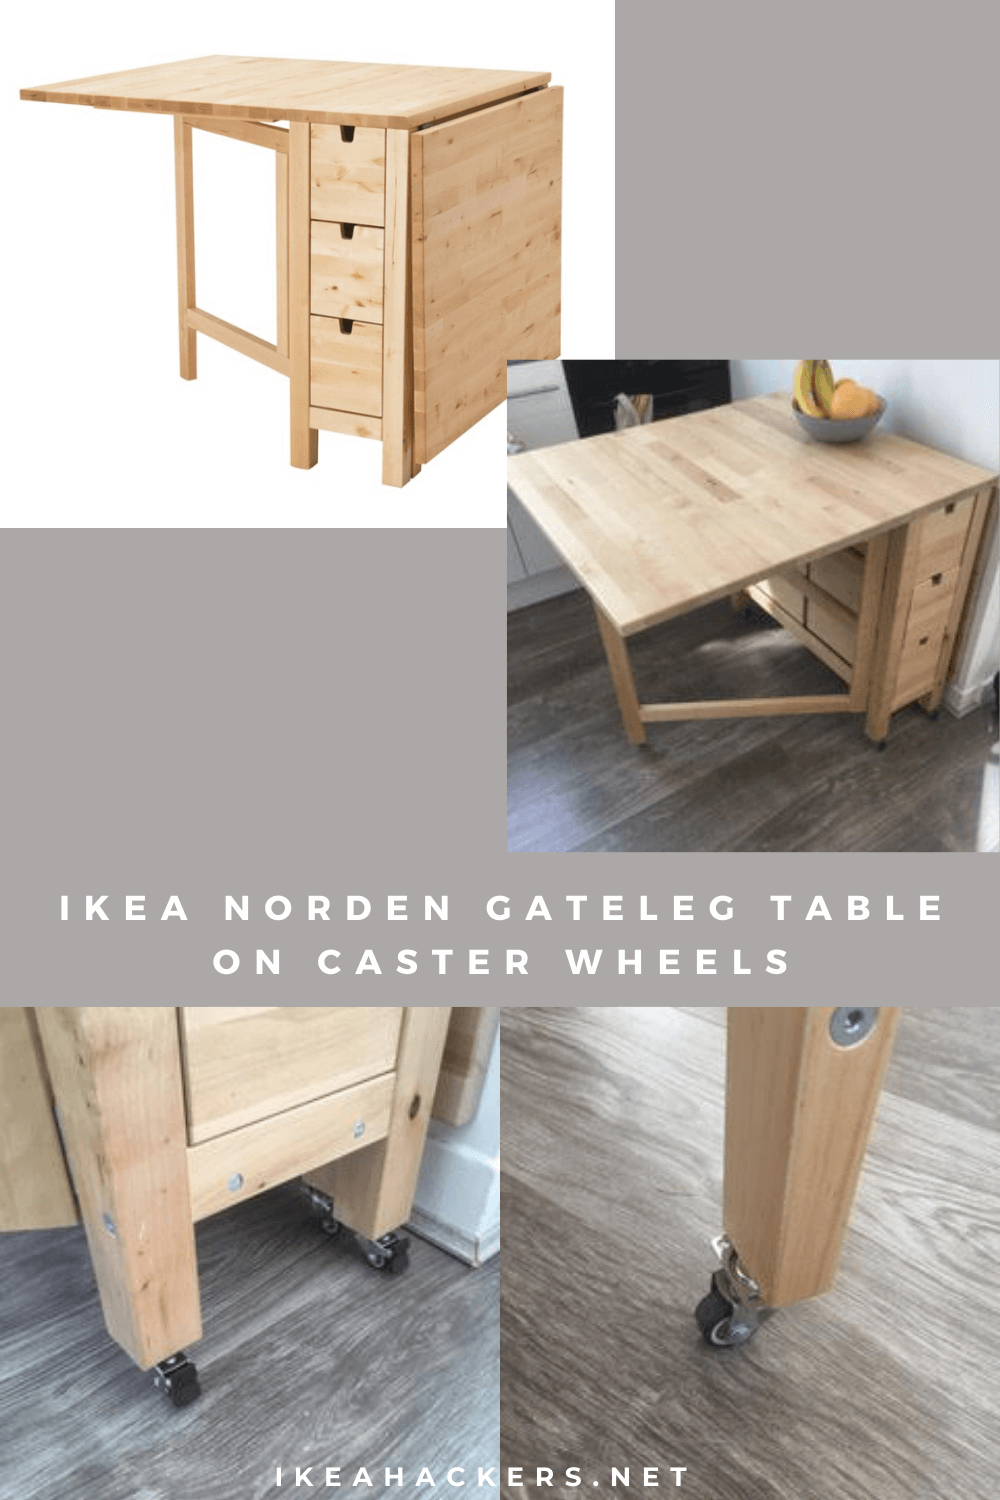 Ikea Norden Gateleg Table Made Mobile Get The Right Wheels For Job Of Moving This 100lb Hack